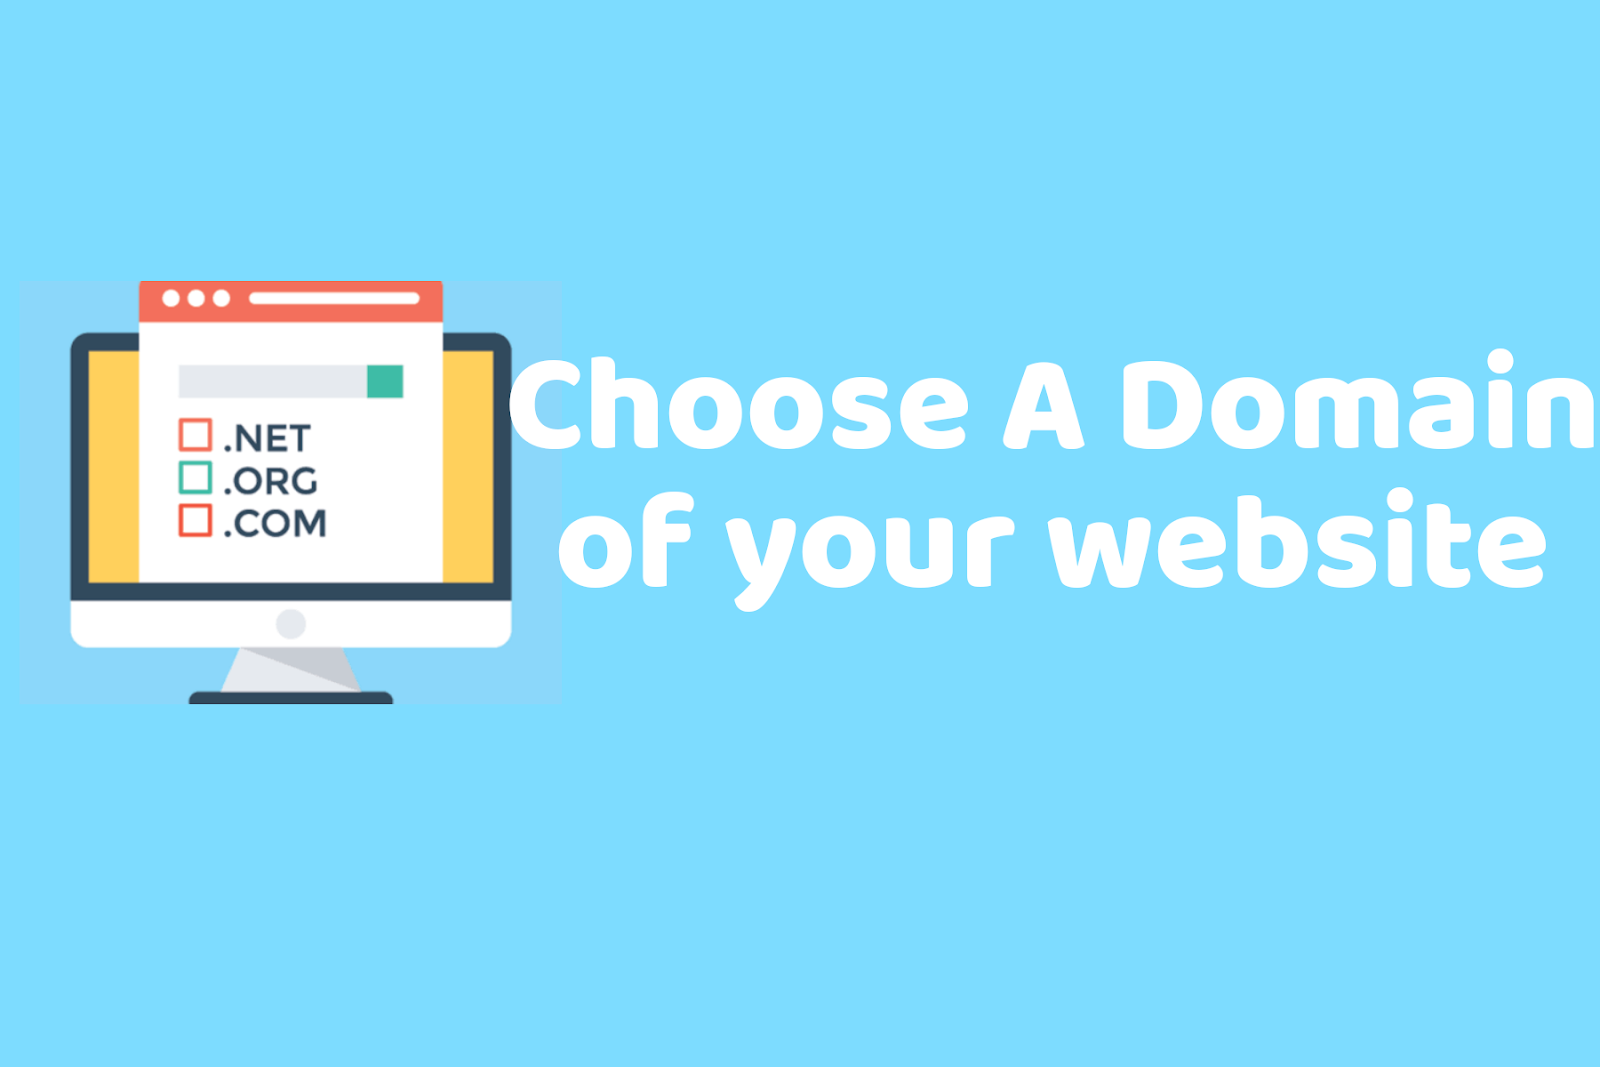 Choose a domain of your website to start blog.